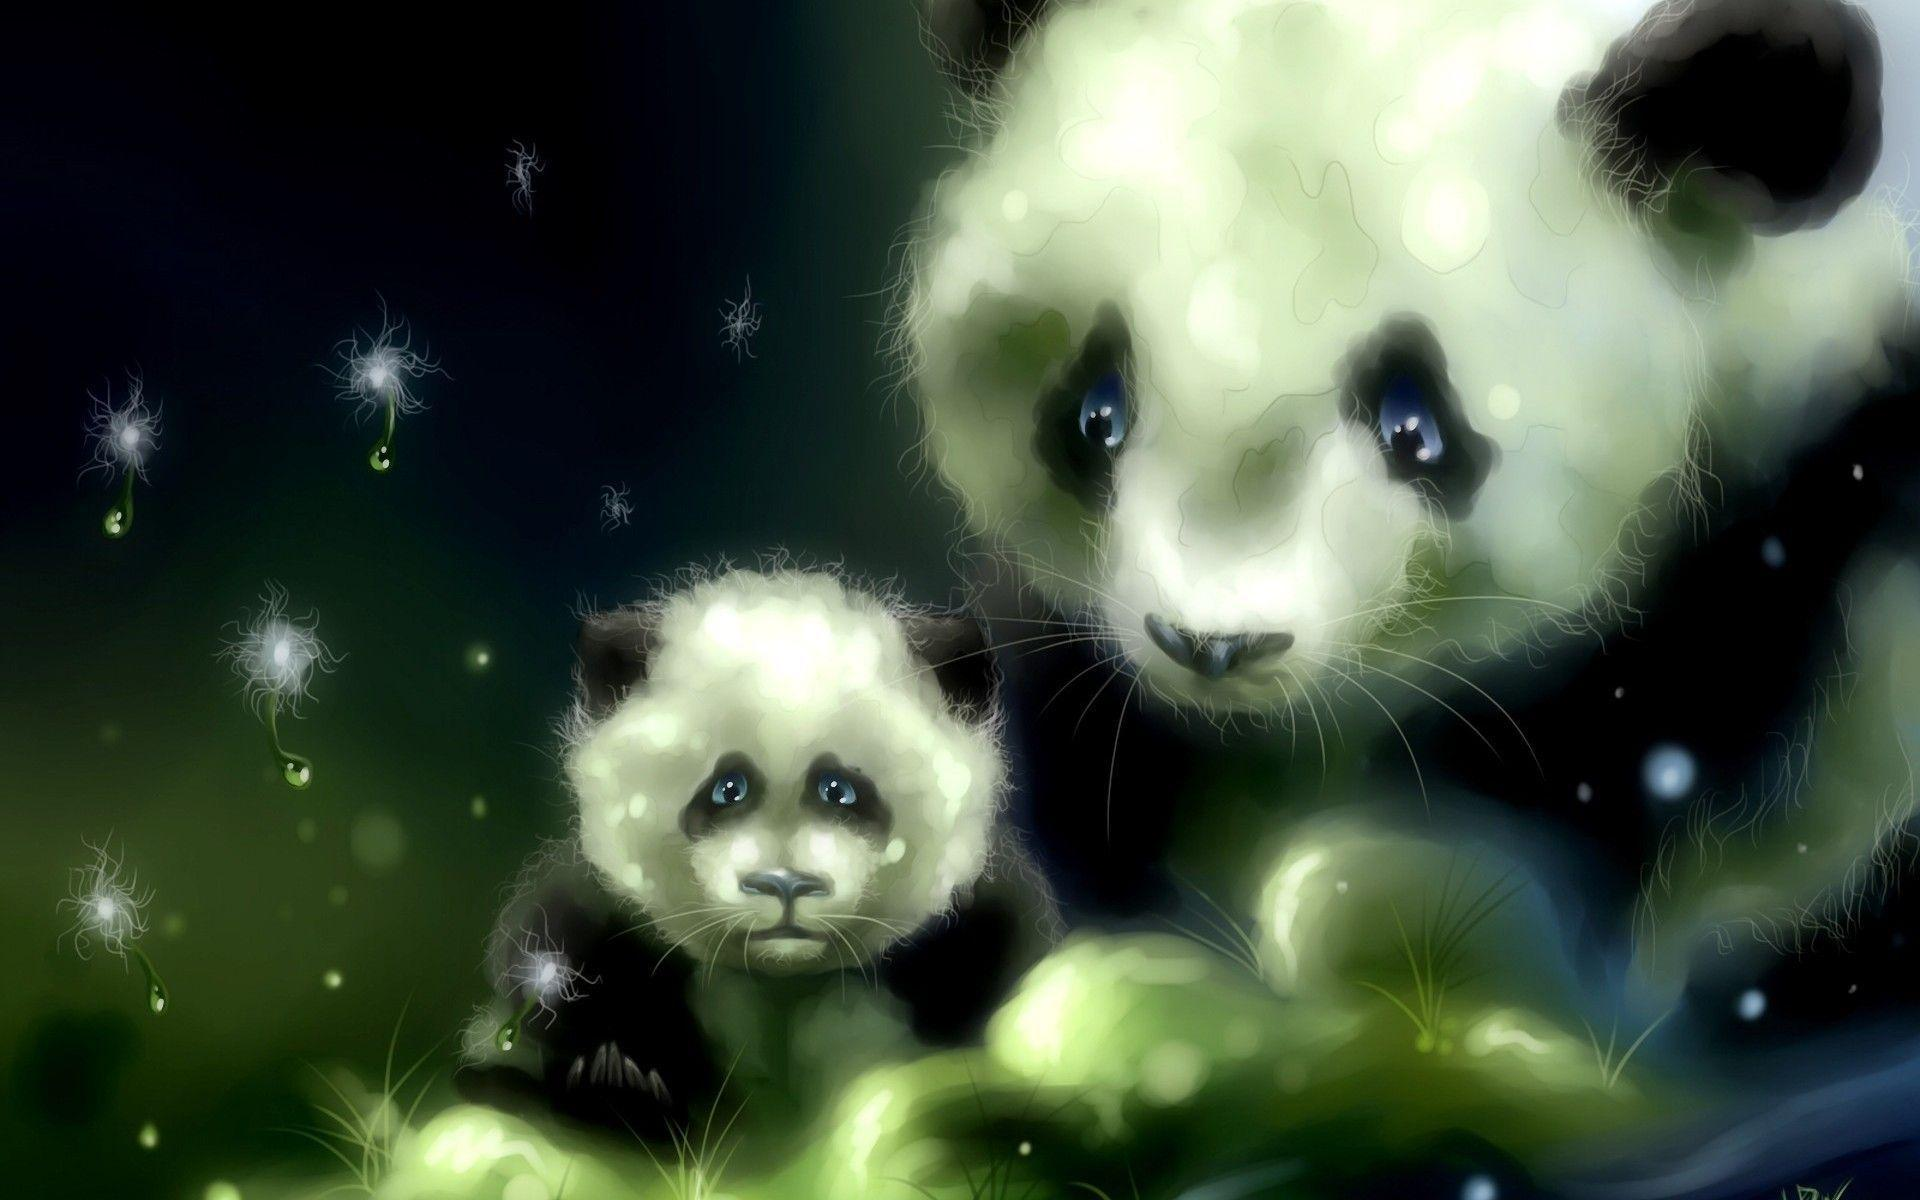 cute panda painting wallpaper - photo #24